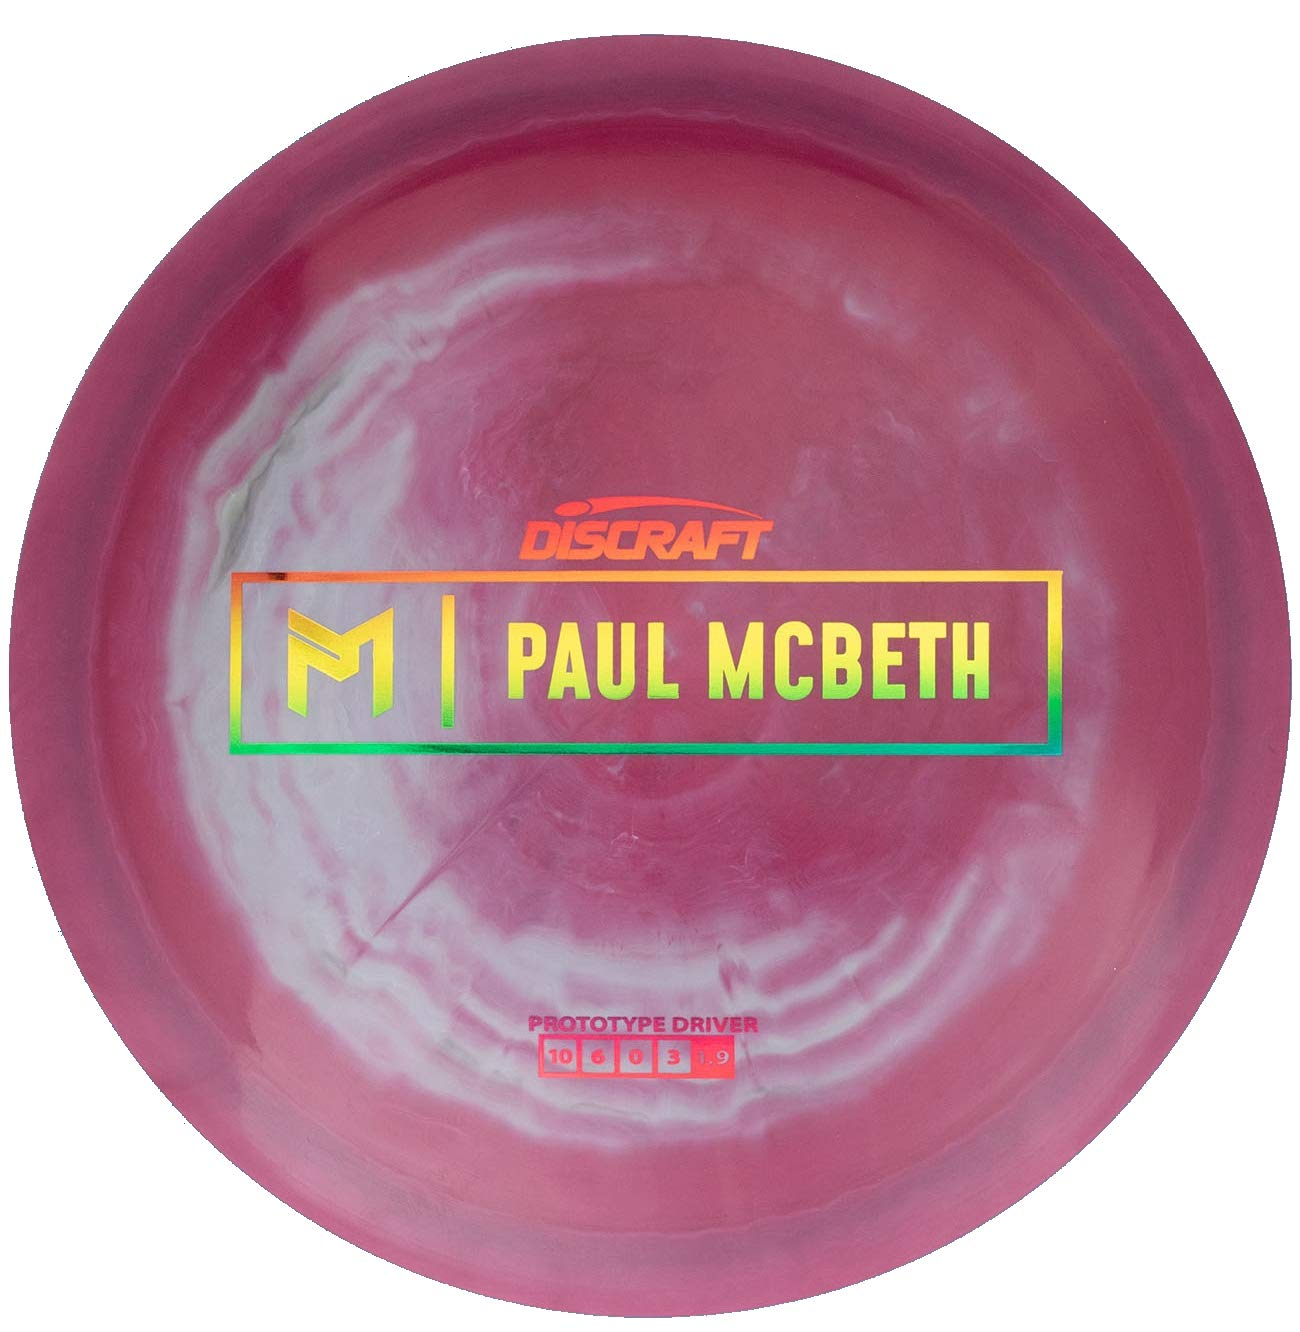 Discraft Limited Edition Paul McBeth Signature Prototype ESP Anax Distance Driver Golf Disc [Colors May Vary] - 170-172g by Discraft Golf Discs